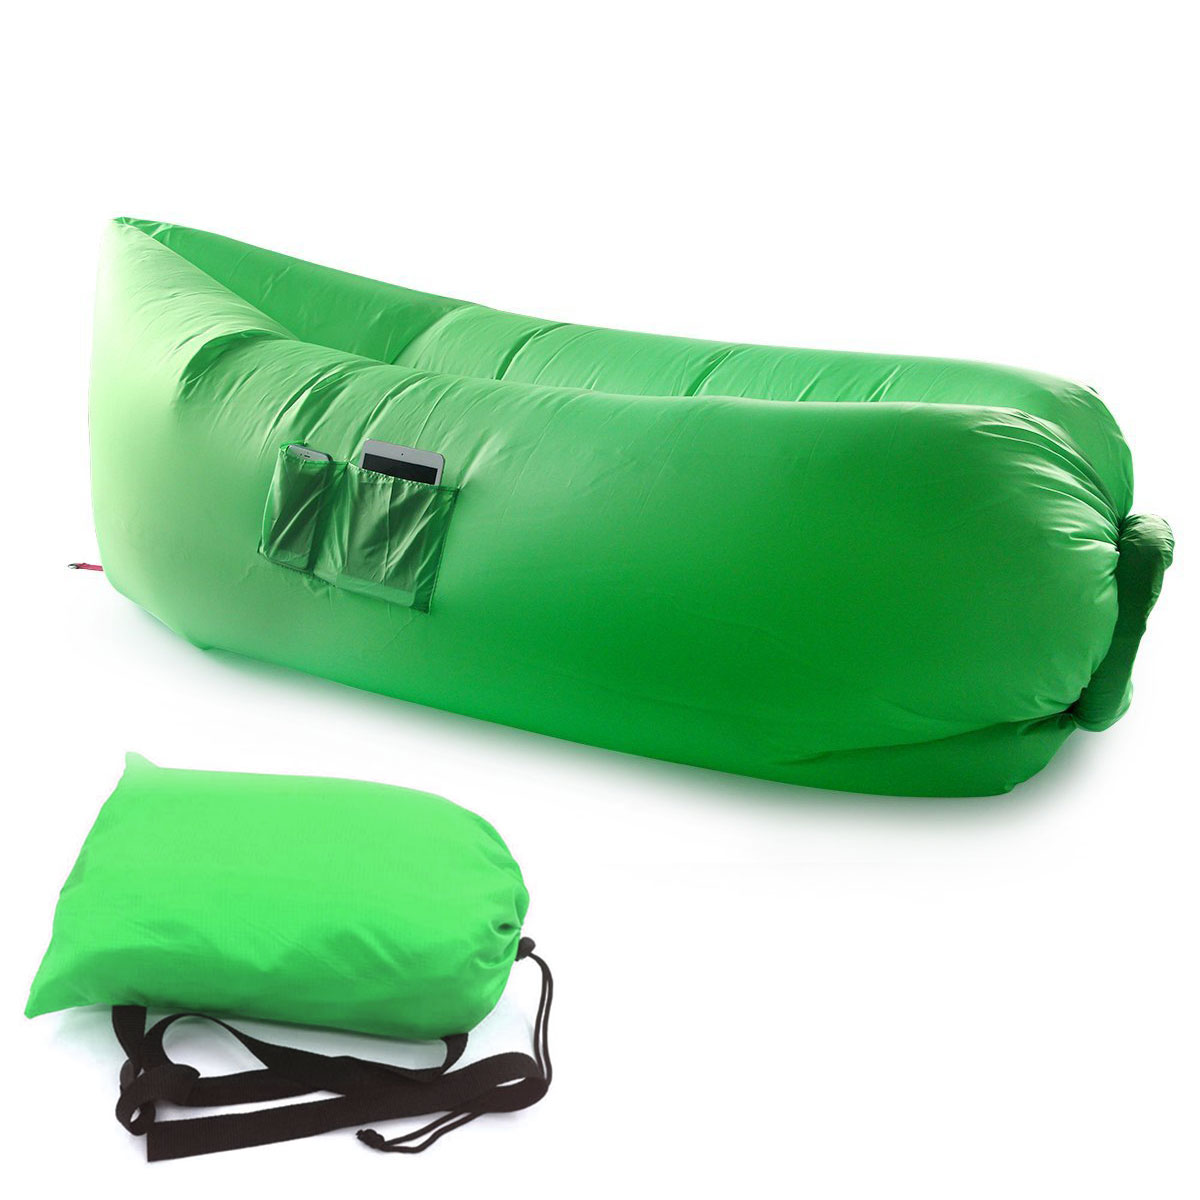 Air Sleeping Bag : Inflatable hangout lounge chair air sofa bag outdoor